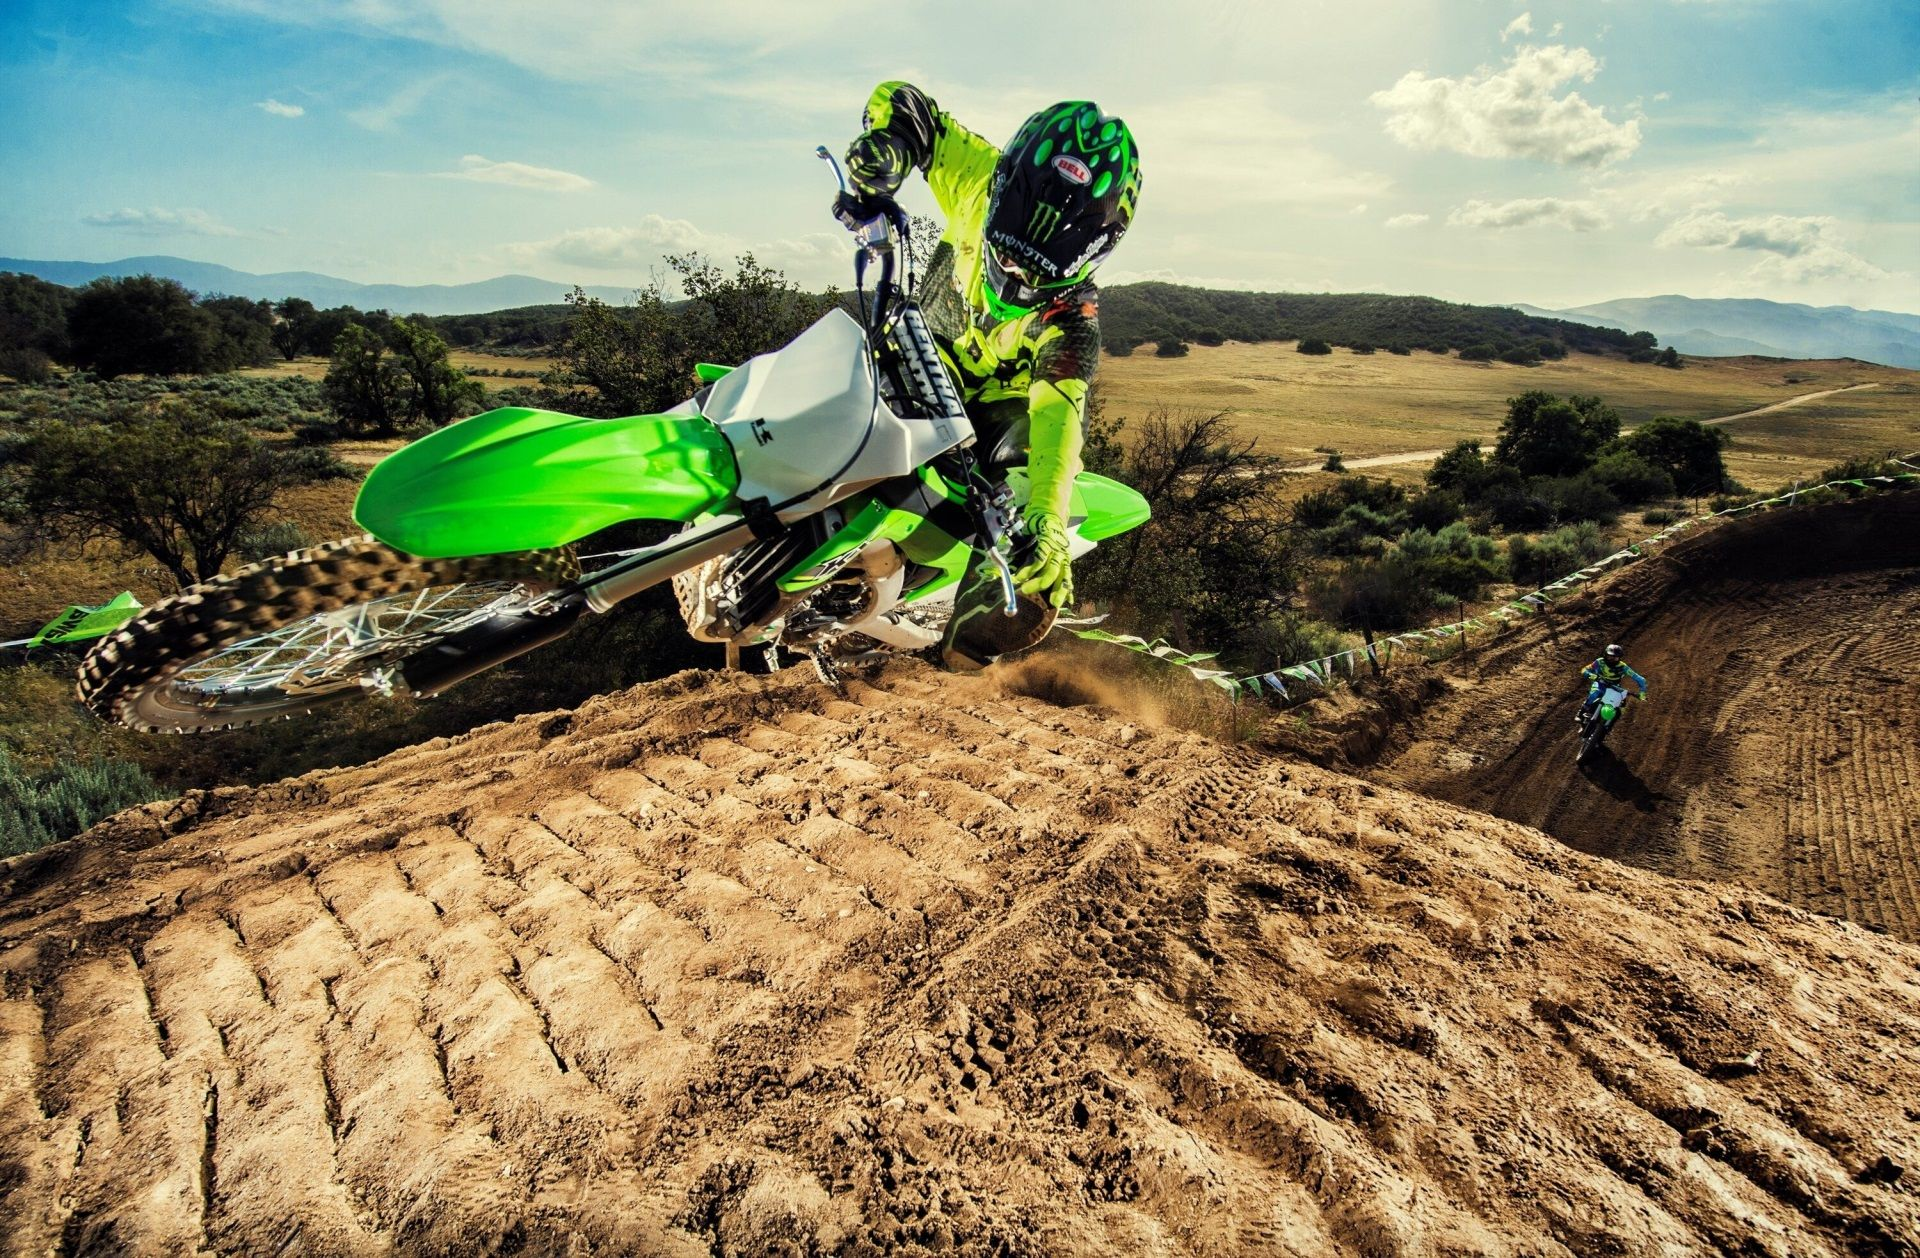 1920x1258 Kawasaki Kx450f Free Download Wallpaper For Pc